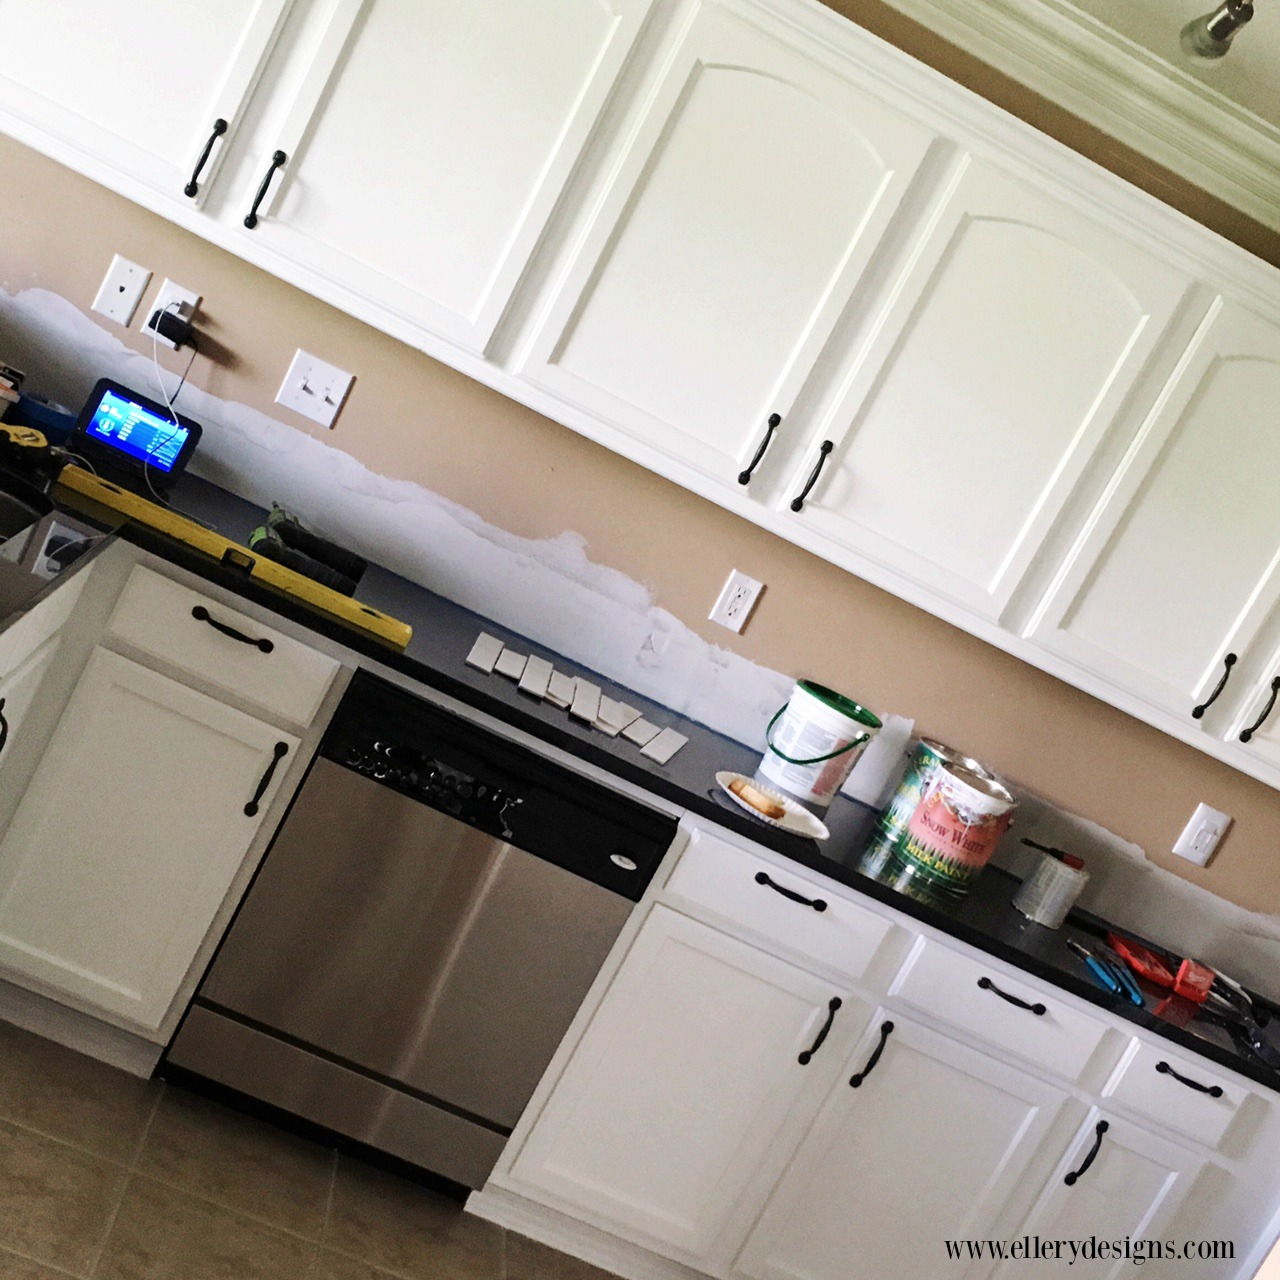 Dyi Kitchen Cabinets: Painting Your Cabinets White